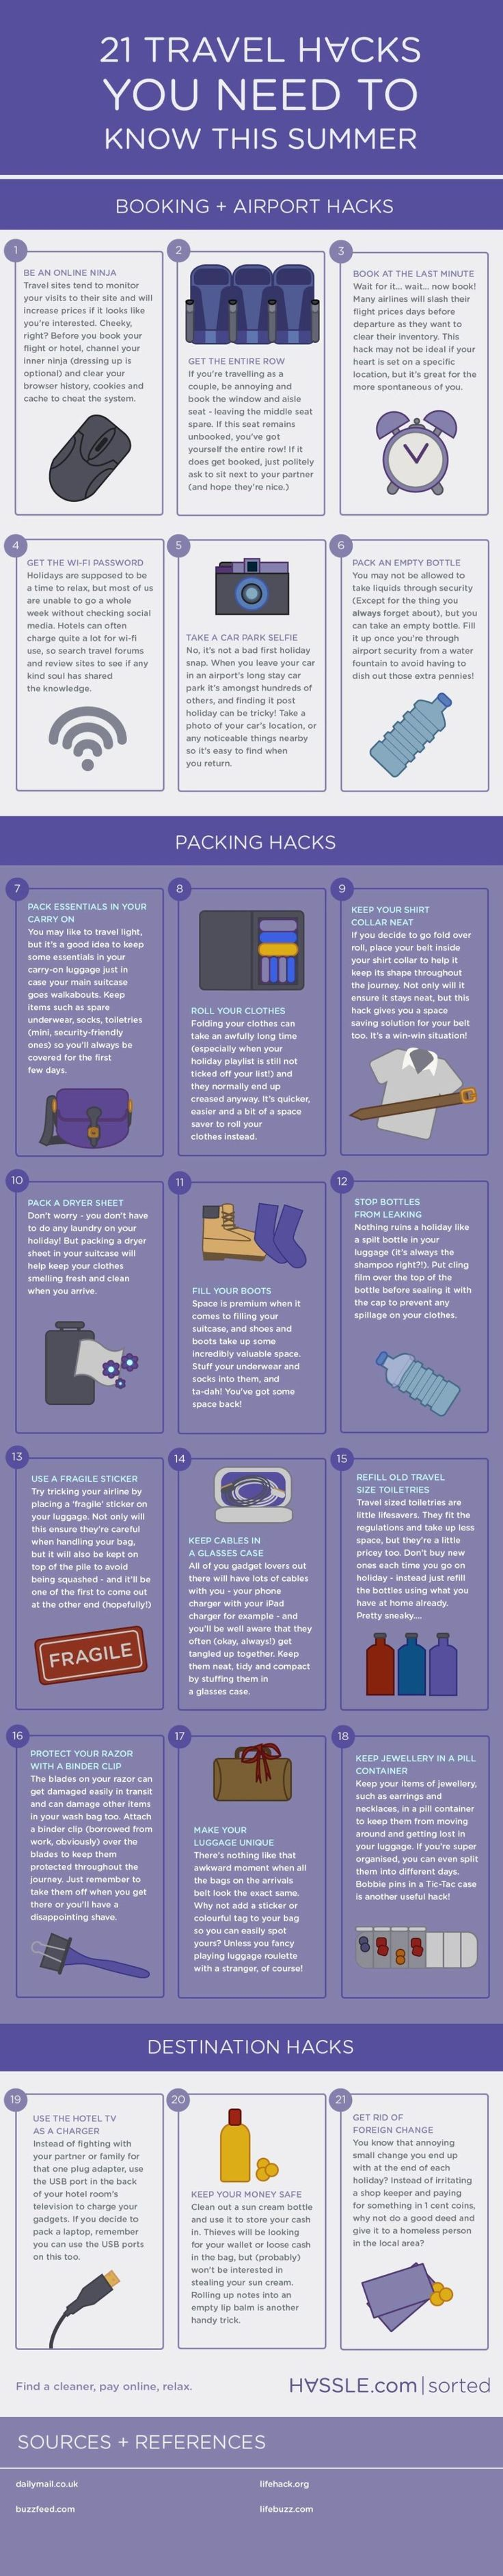 This graphic breaks down those tricks that'll simplify your trip, from planning to packing to keeping your belongings safe and sound